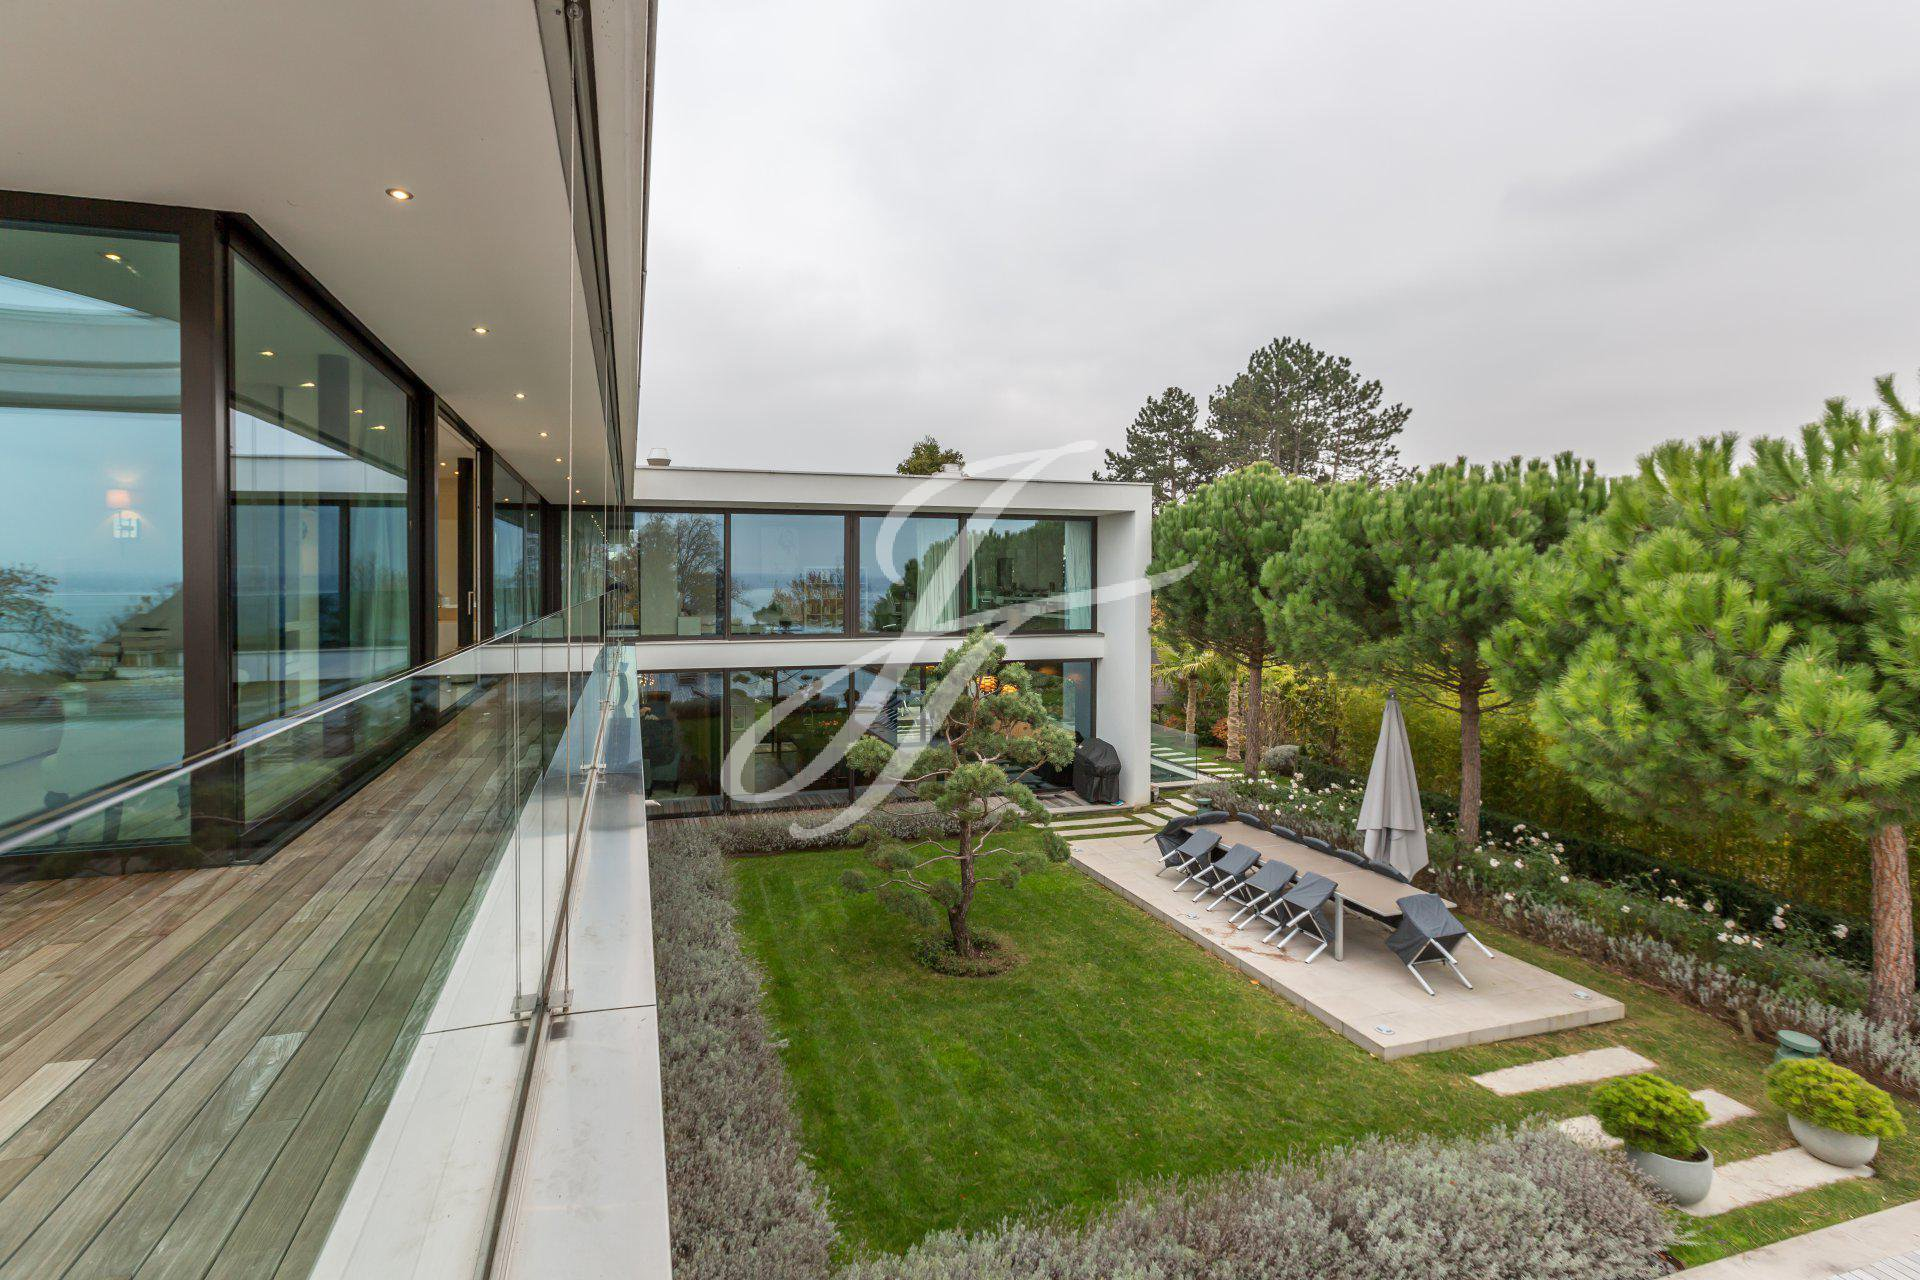 Sumptuous contemporary villa for sale in Anières, Switzerland |FINEST RESIDENCES